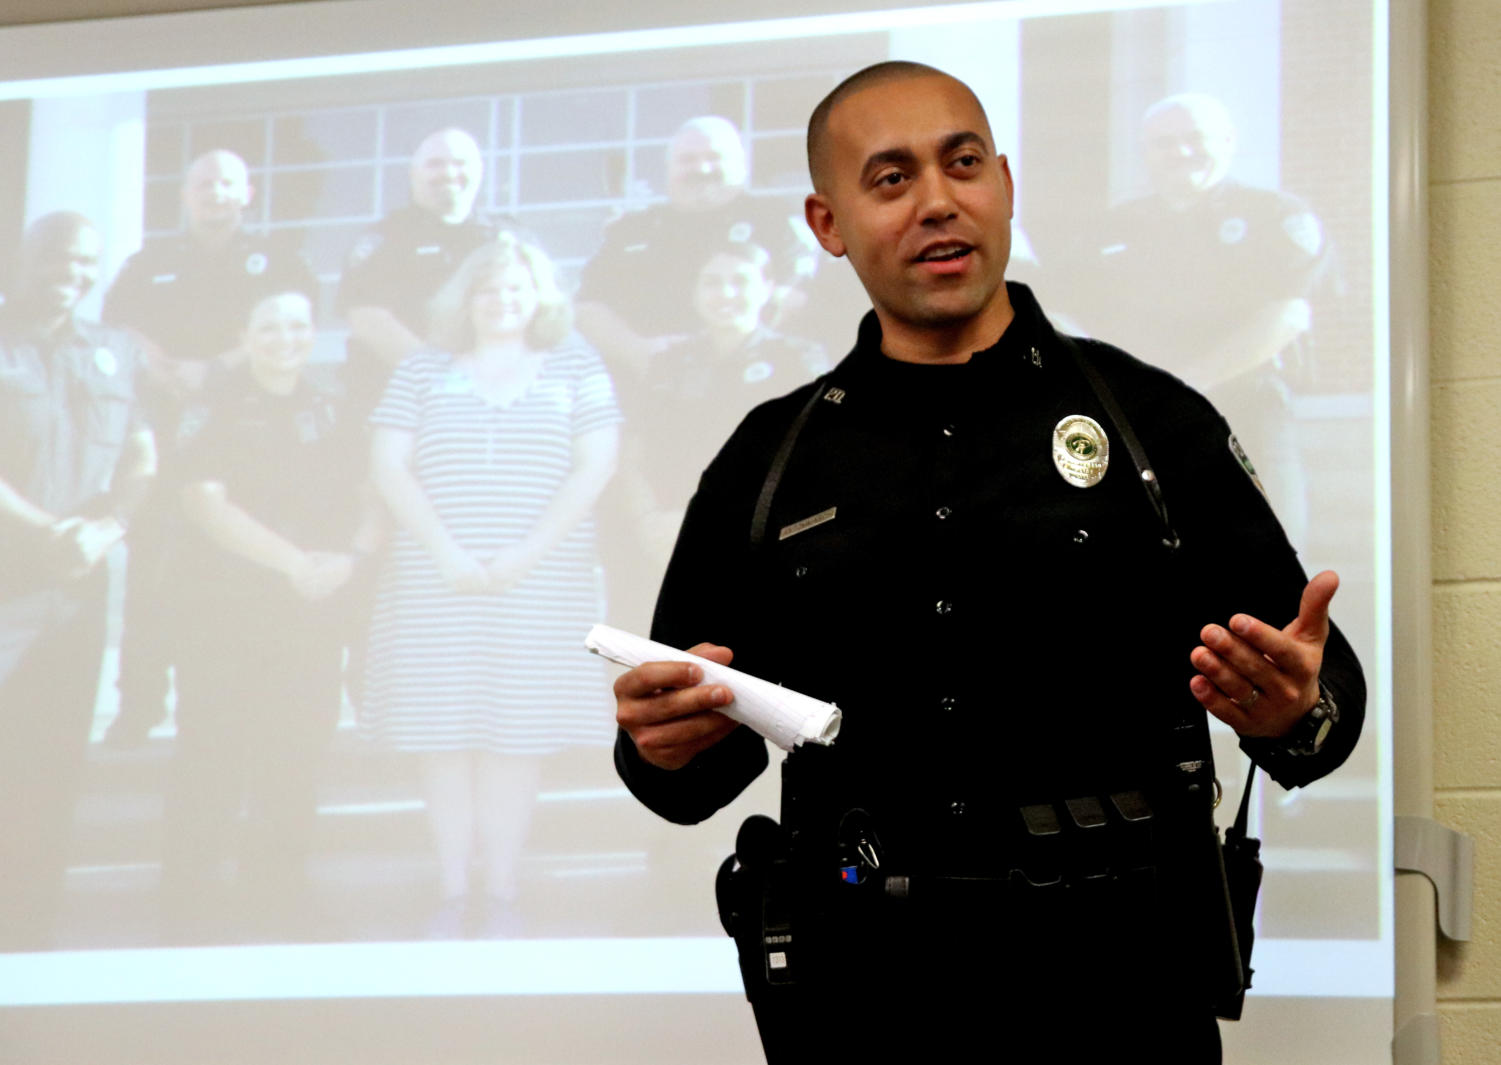 Officer Steve Antonmarchi informs instructor Rod McCall's government class about police procedures.